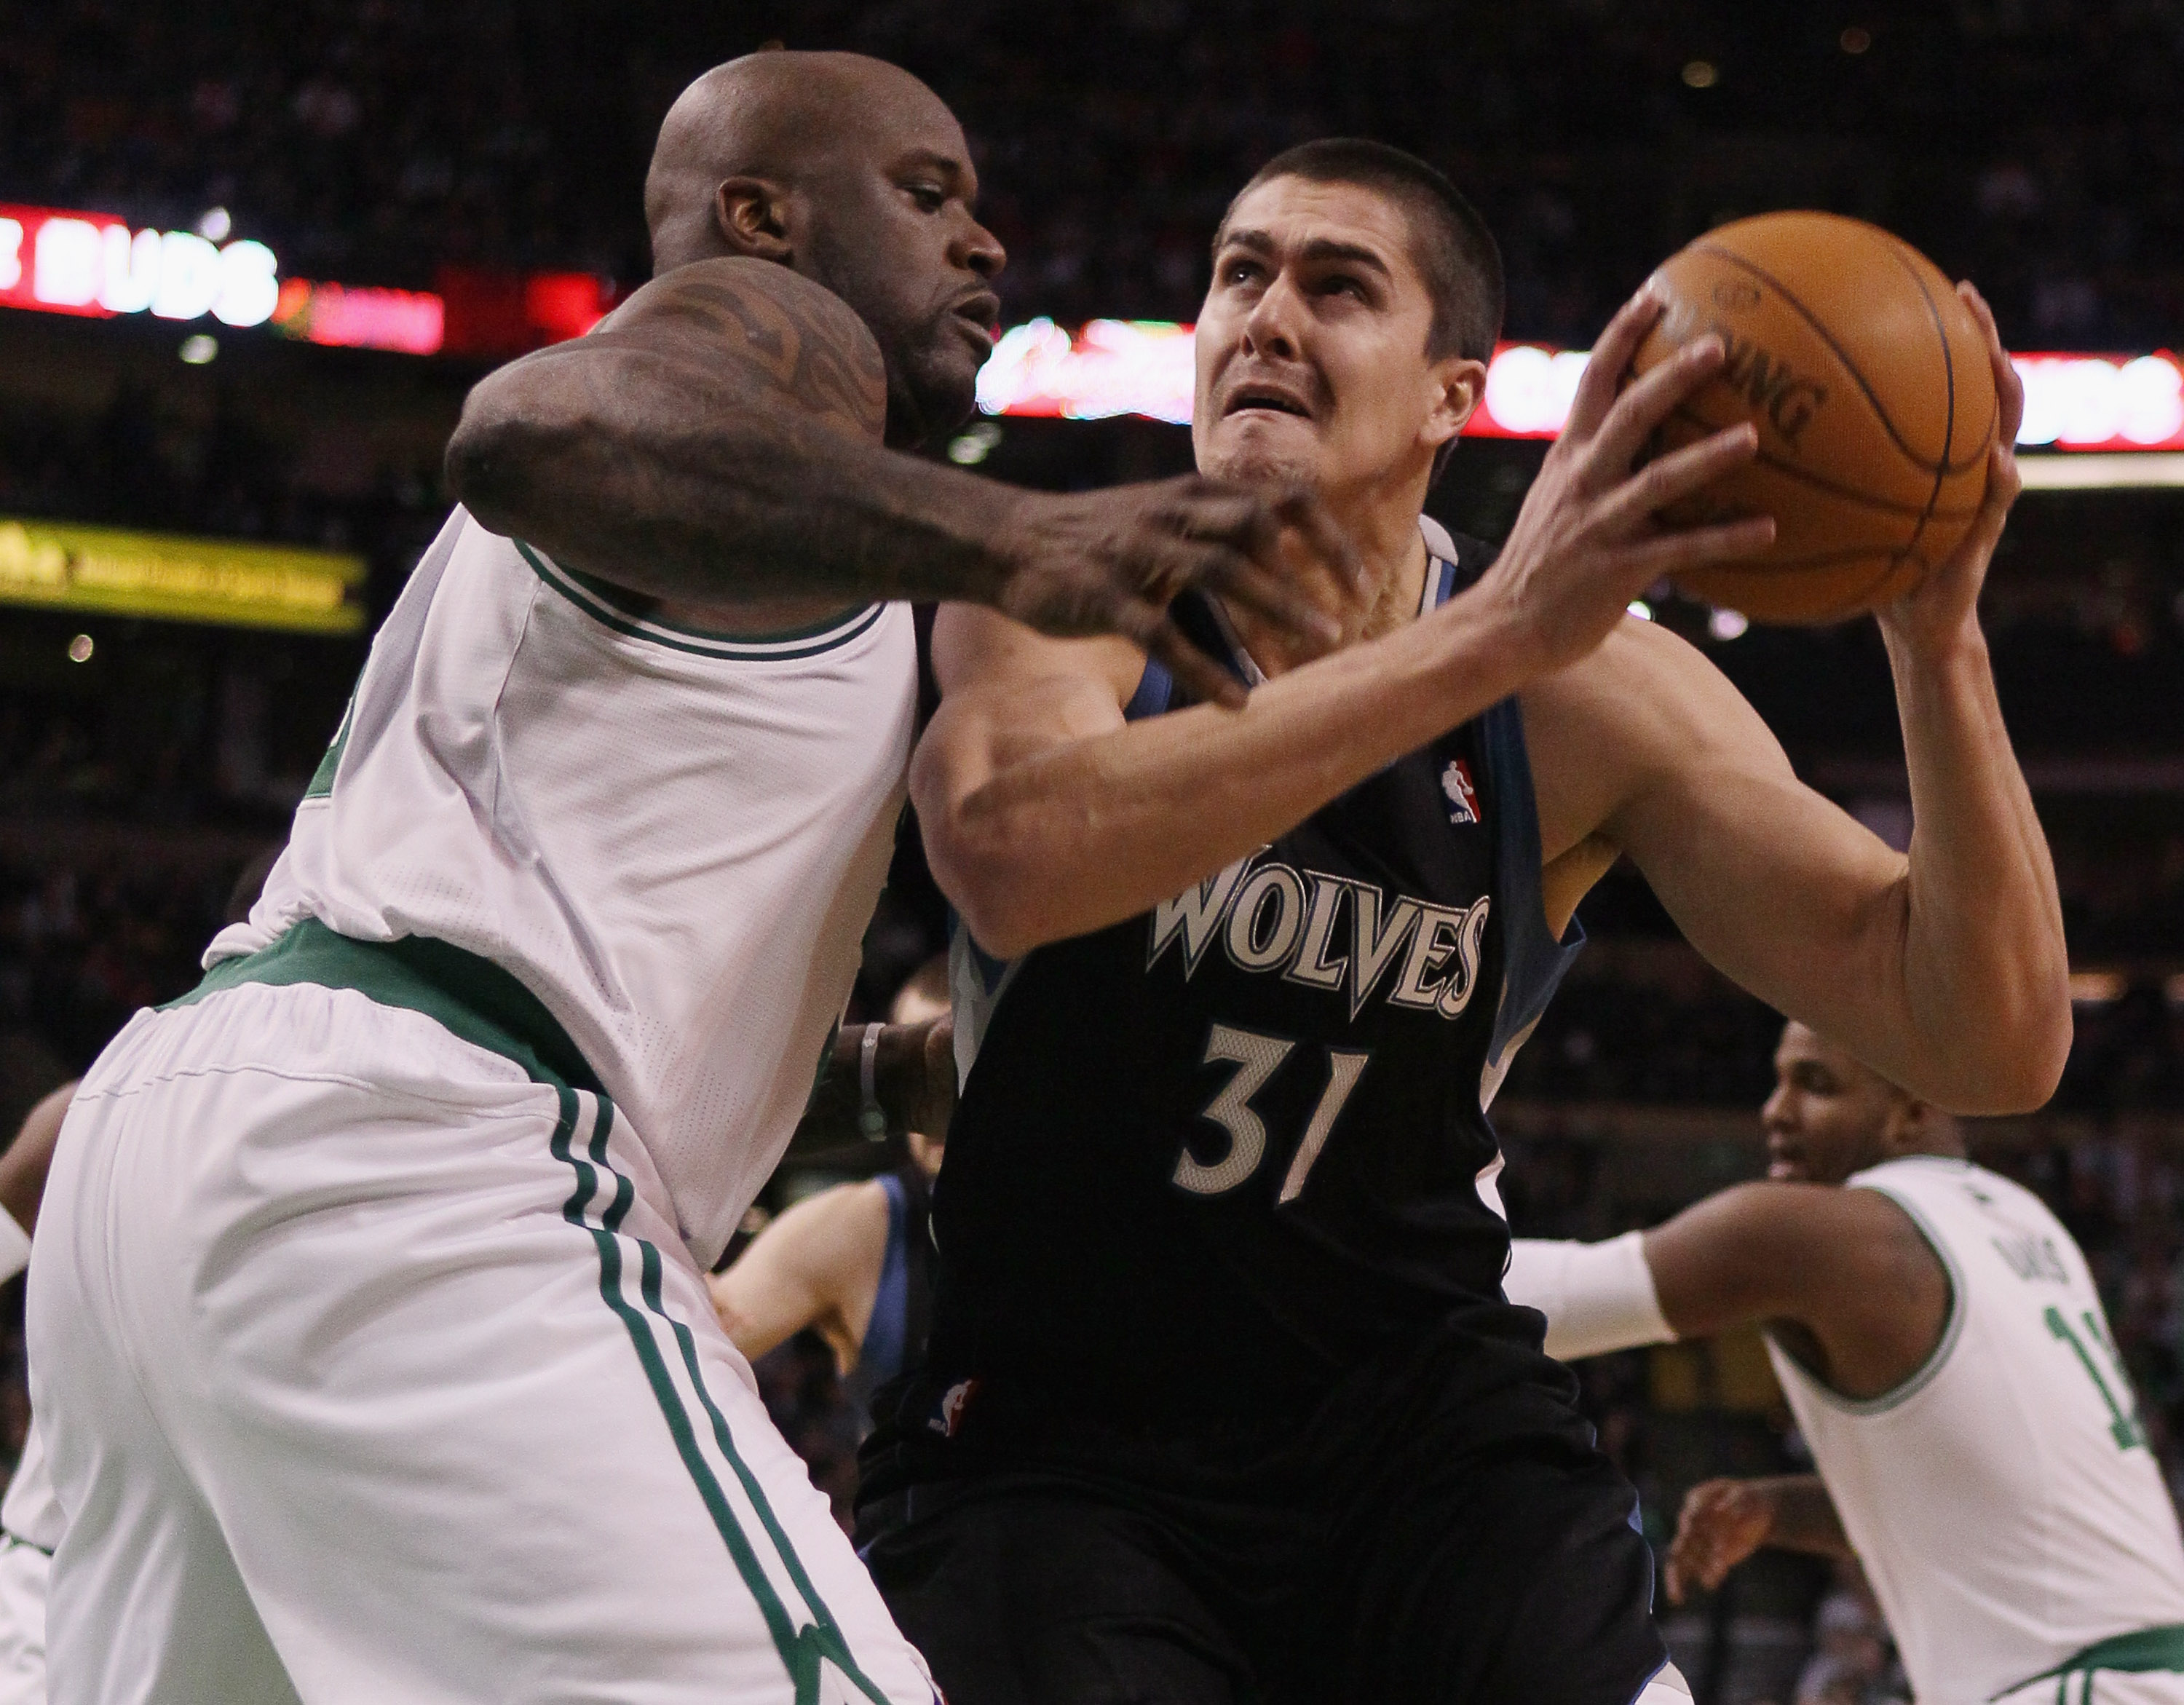 BOSTON, MA - JANUARY 03:  Darko Milicic #31 of the Minnesota Timberwolves tries to get around Shaquille O'Neal #36 of the Boston Celtics on January 3, 2011 at the TD Garden in Boston, Massachusetts. NOTE TO USER: User expressly acknowledges and agrees tha